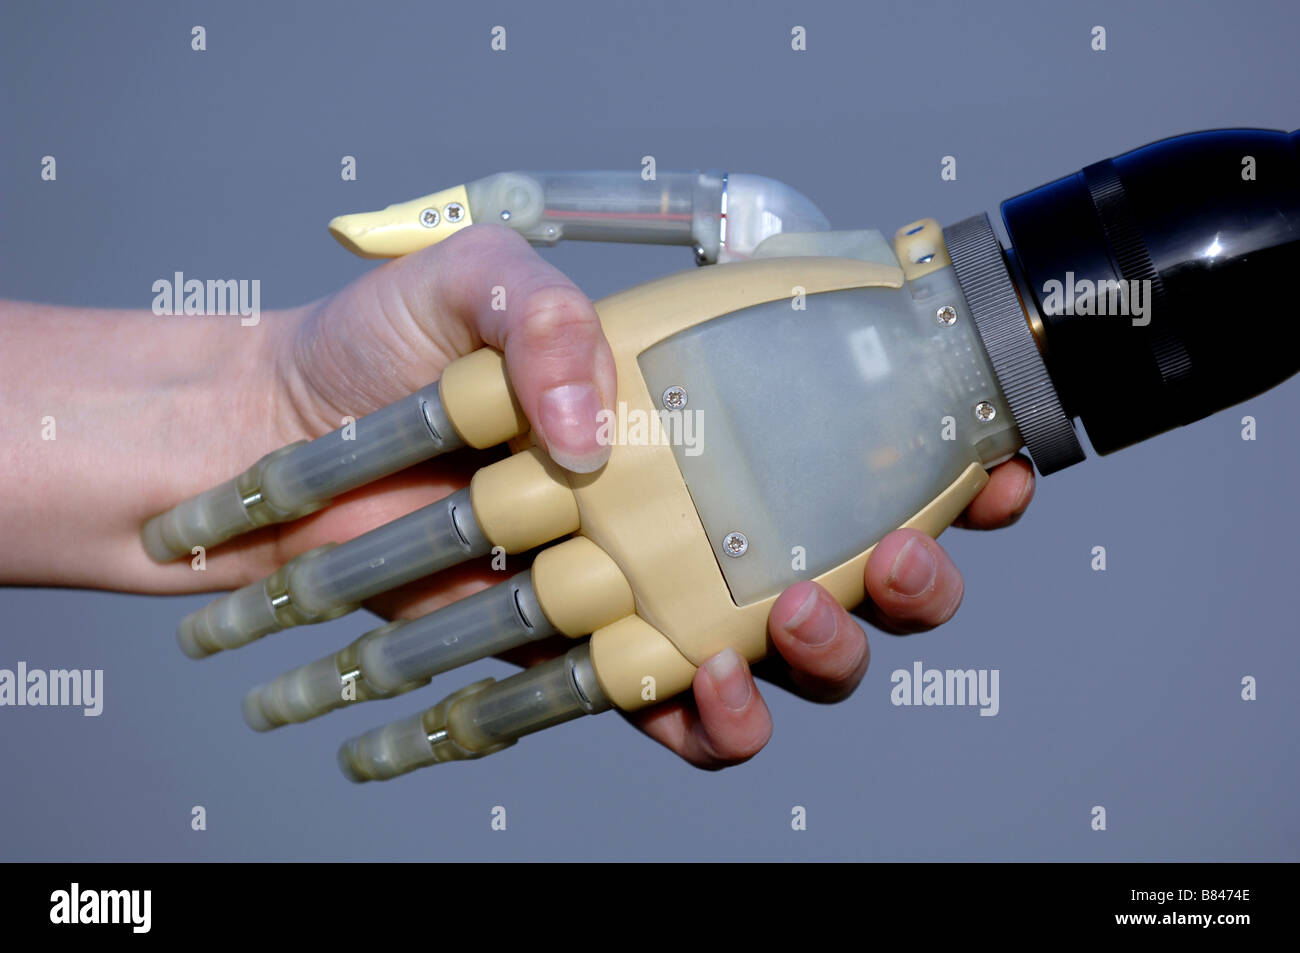 Bionic hands for amputees. Each digit can move. - Stock Image